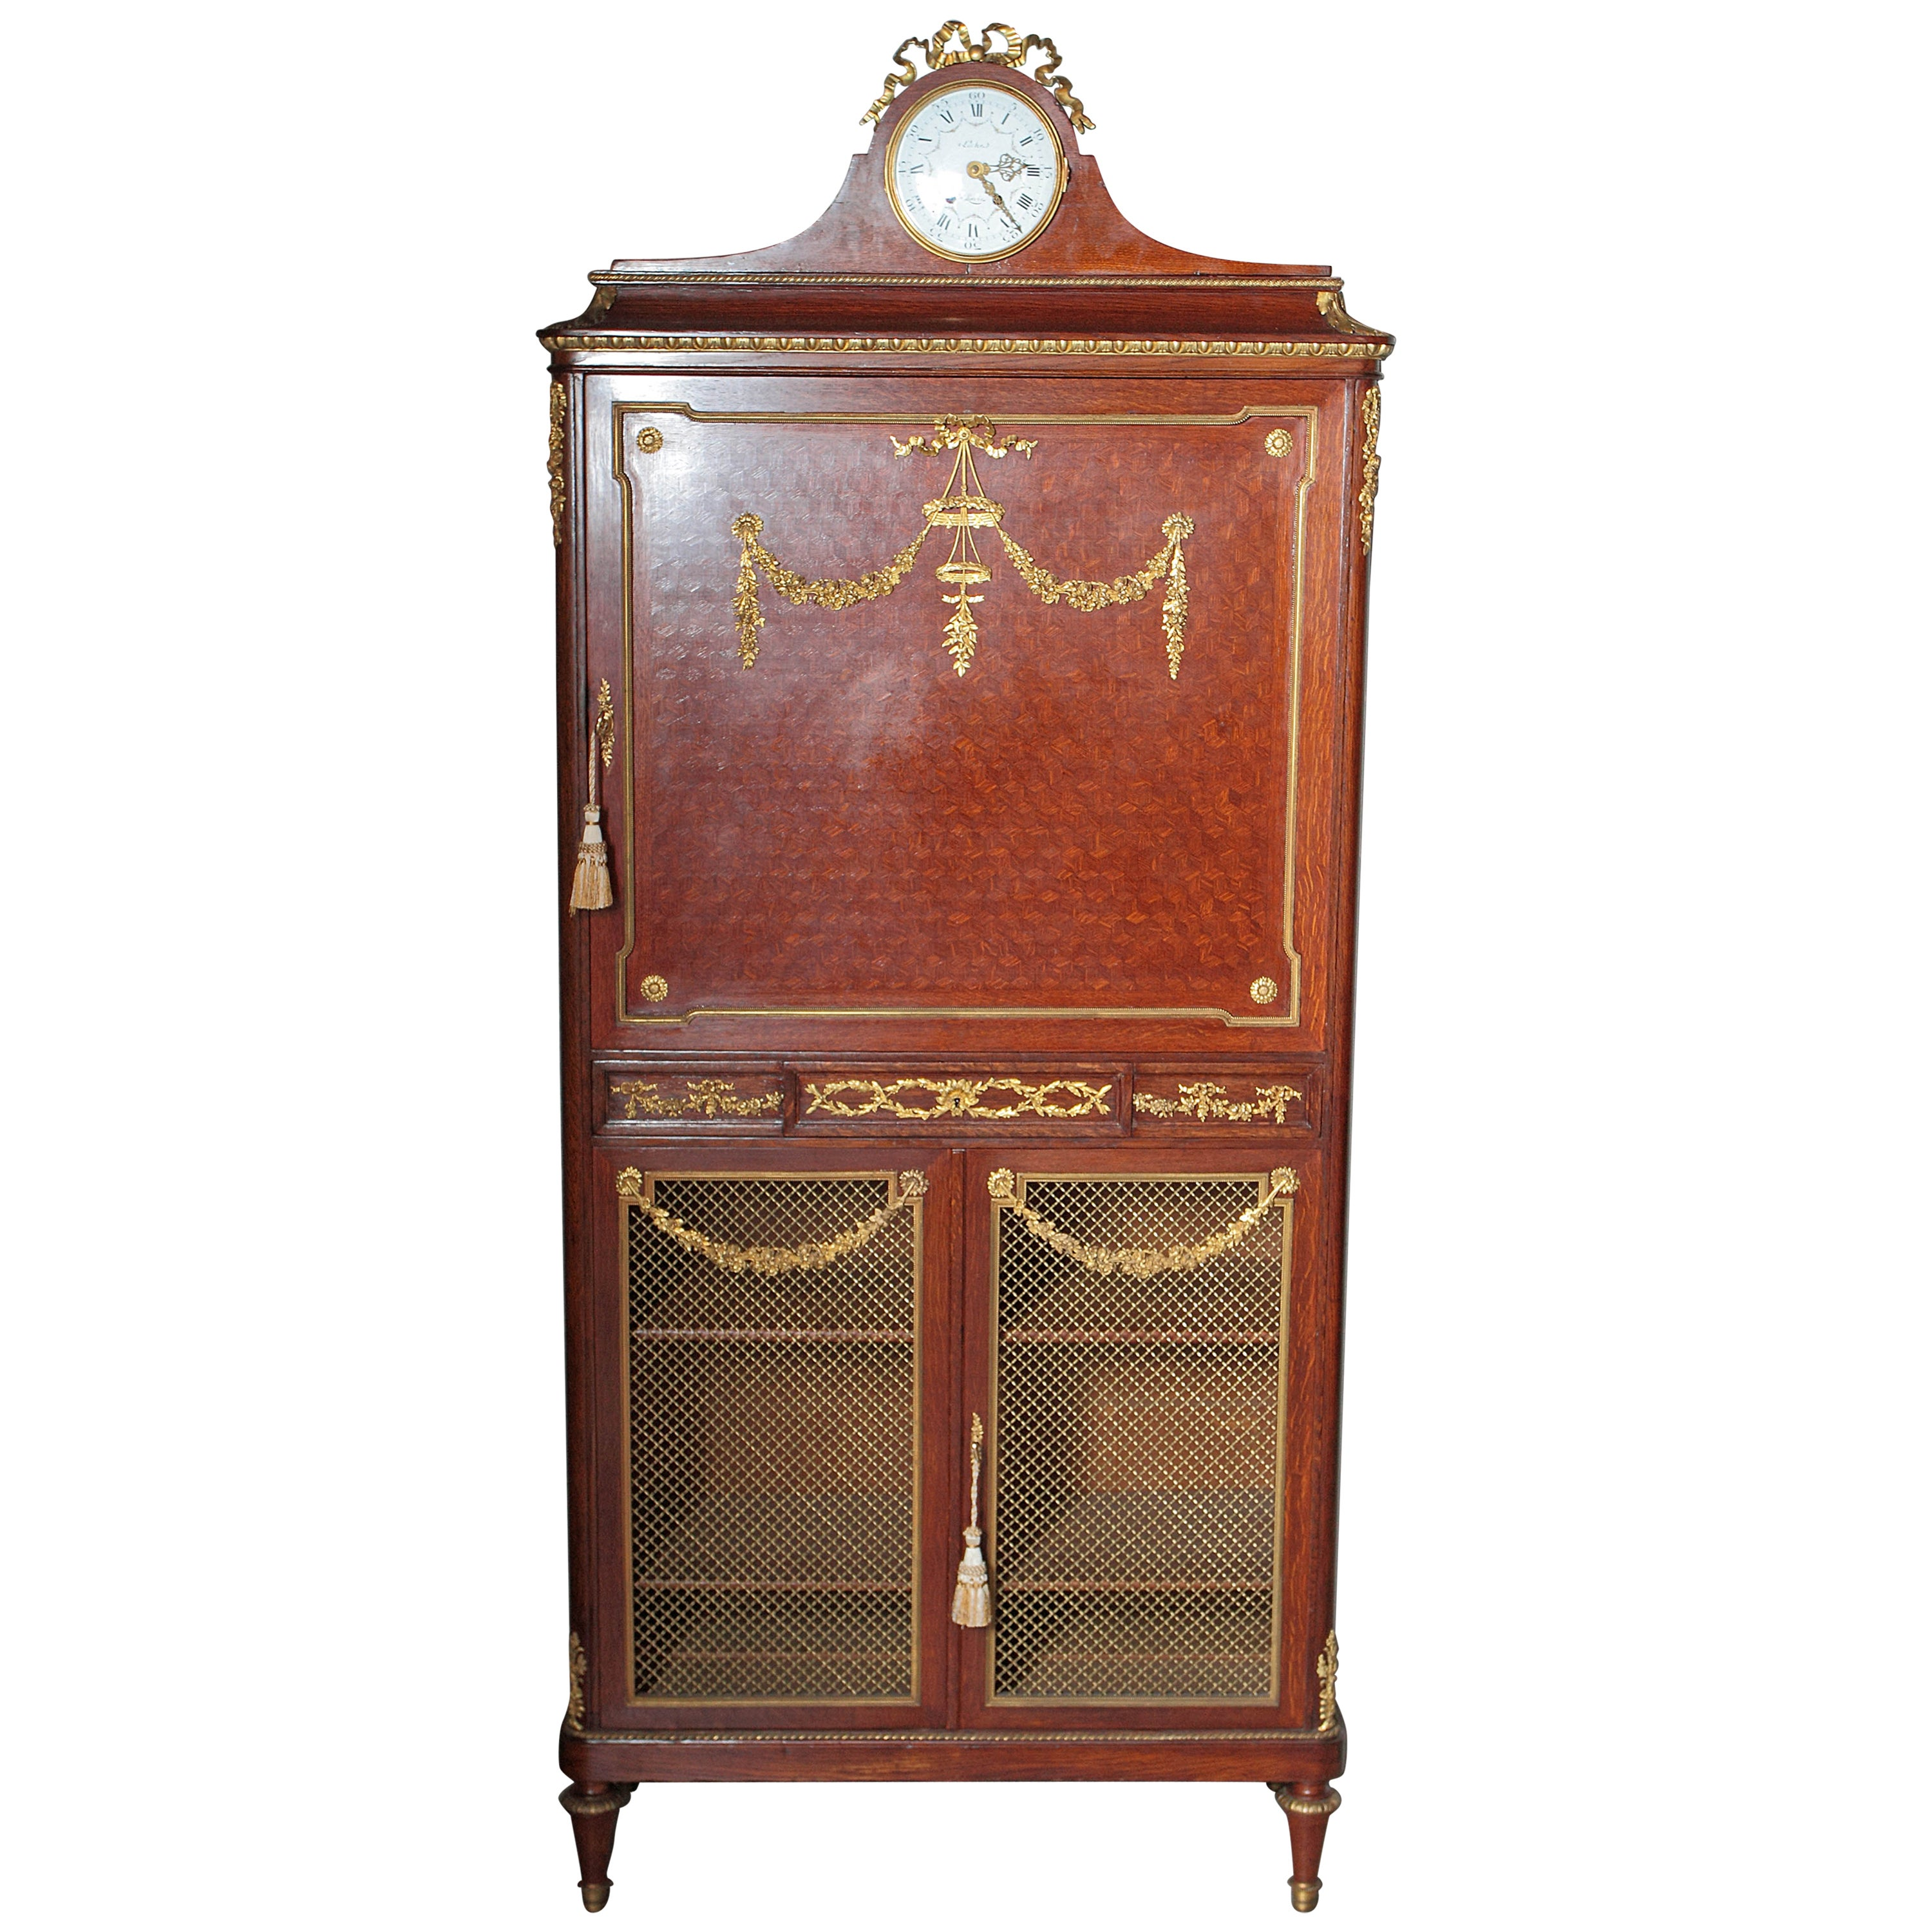 19th Century Parquetry and Gilt Bronze Cabinet by Francois Linke